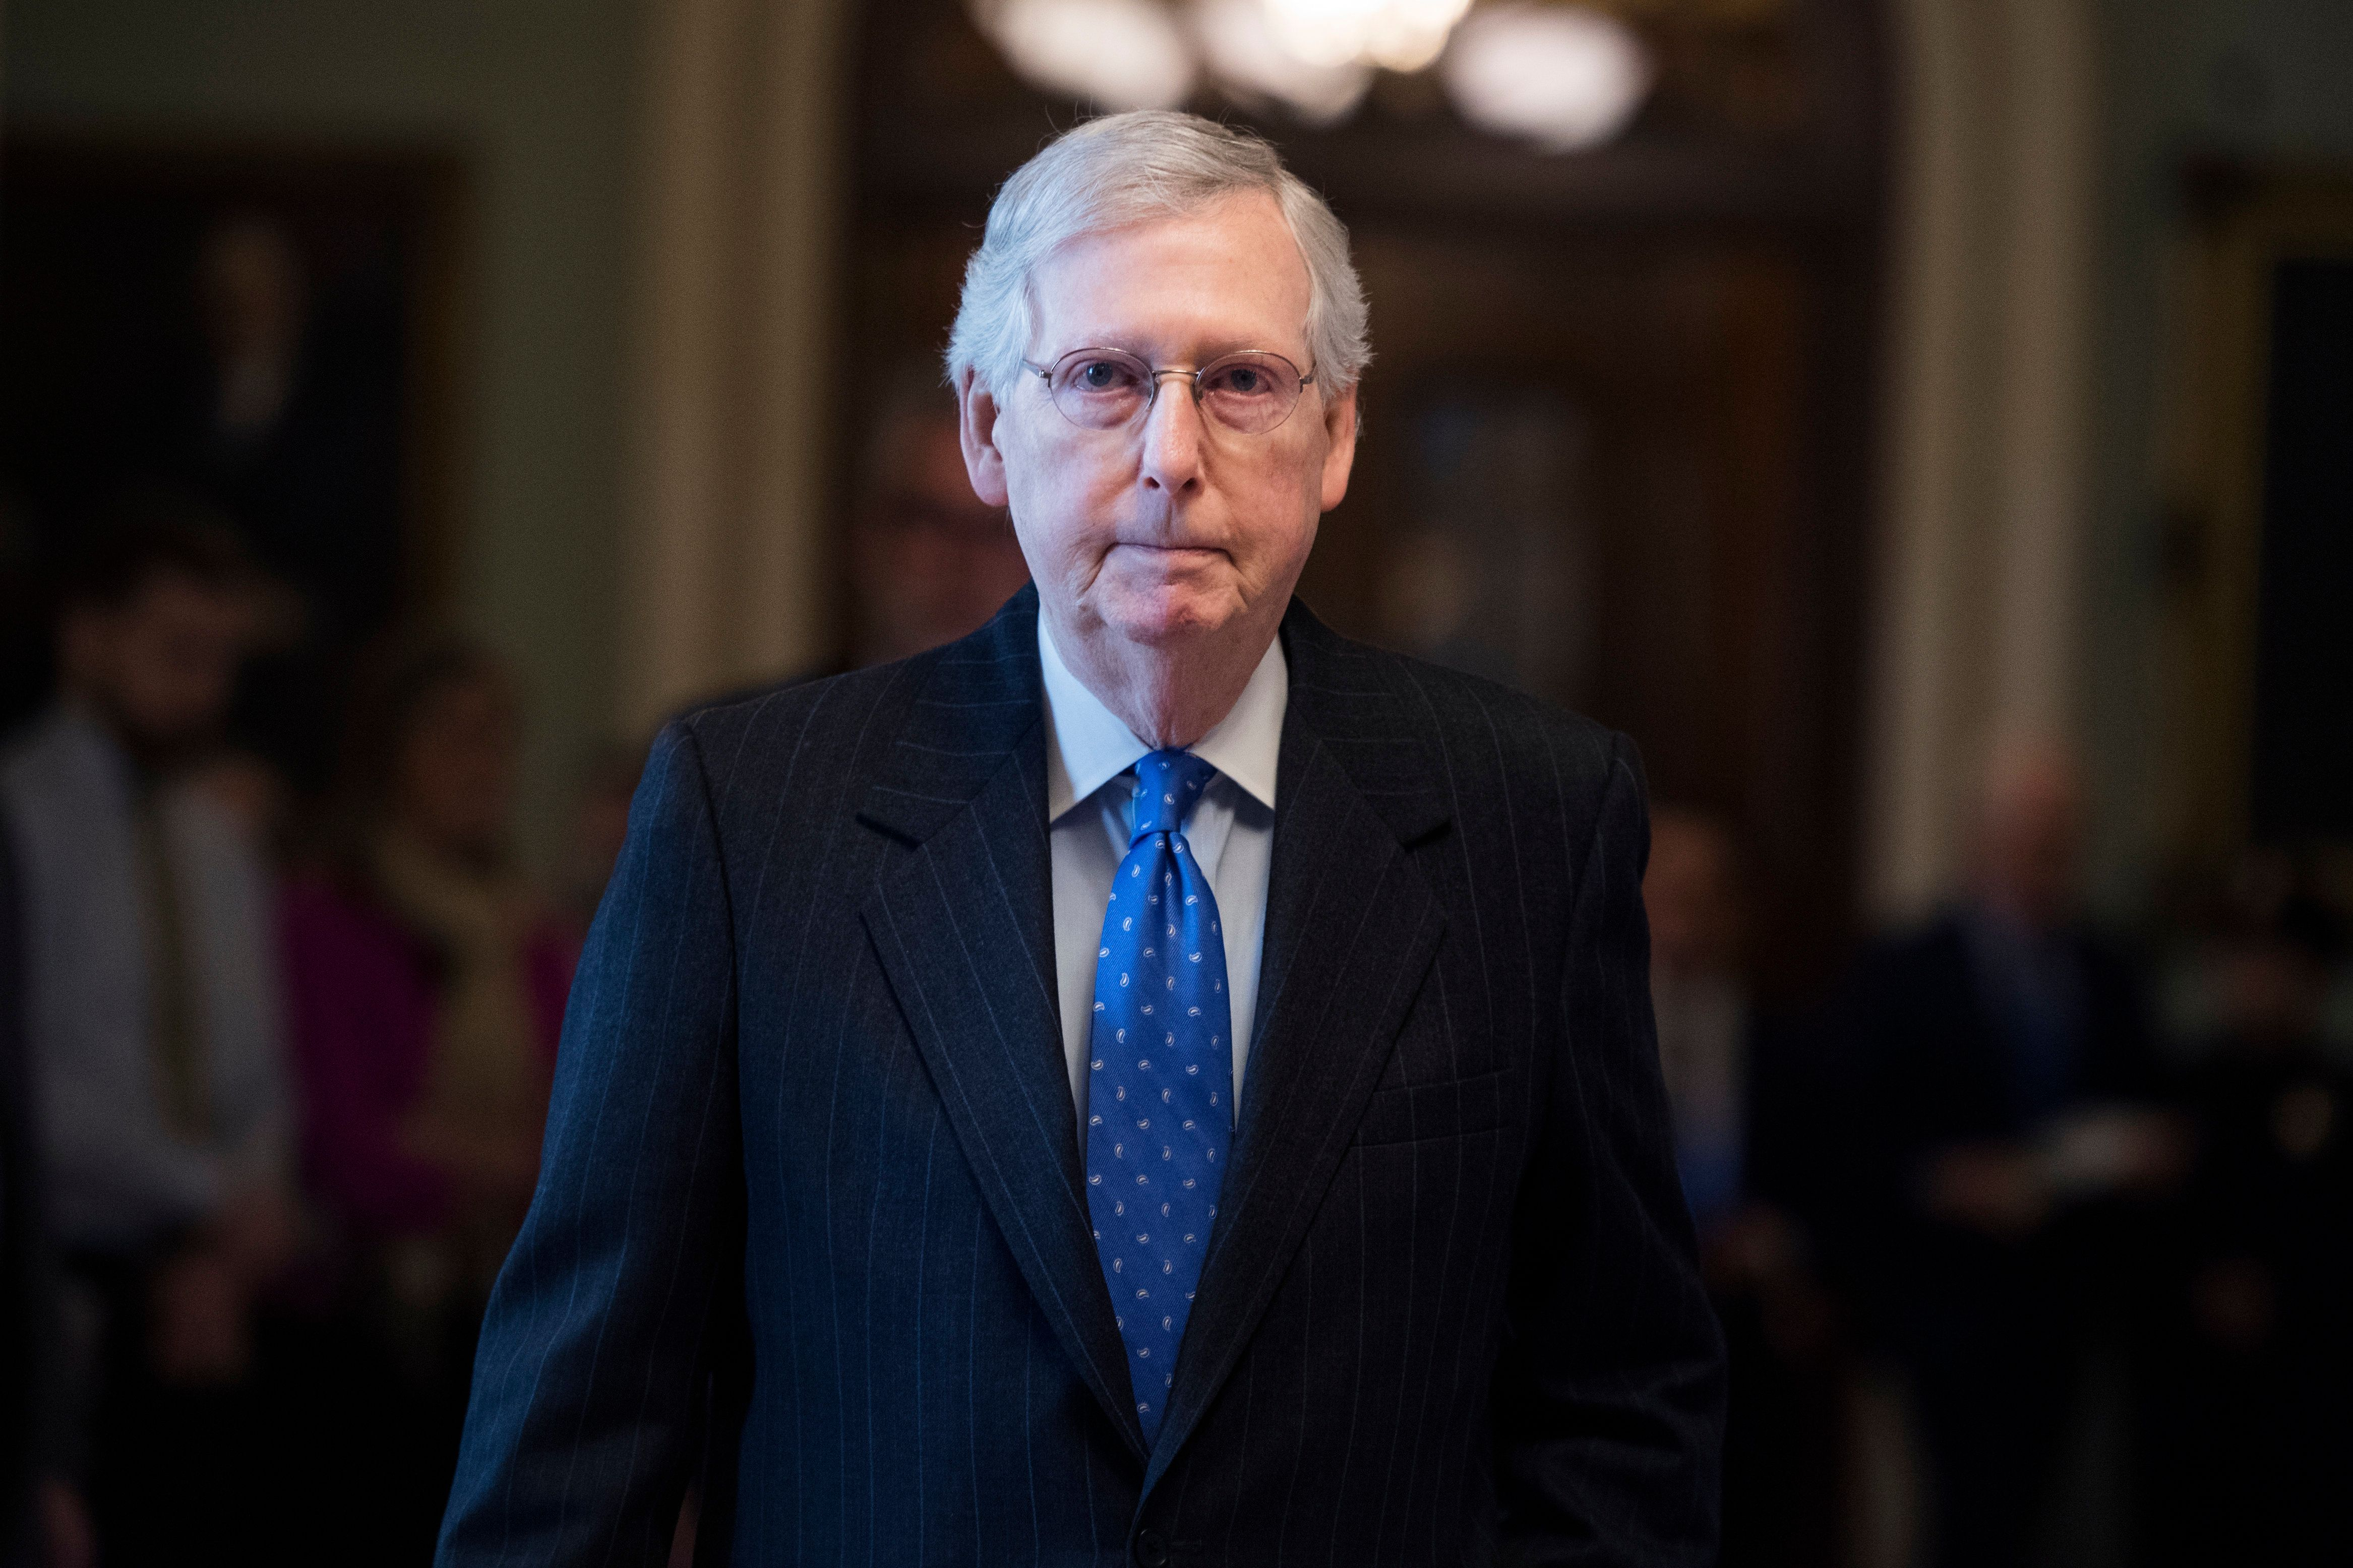 UNITED STATES - JANUARY 15: Senate Majority Leader Mitch McConnell, R-Ky., is seen the Capitol after the Senate Policy luncheons in the Capitol on Tuesday, January 15, 2019. (Photo By Tom Williams/CQ Roll Call)